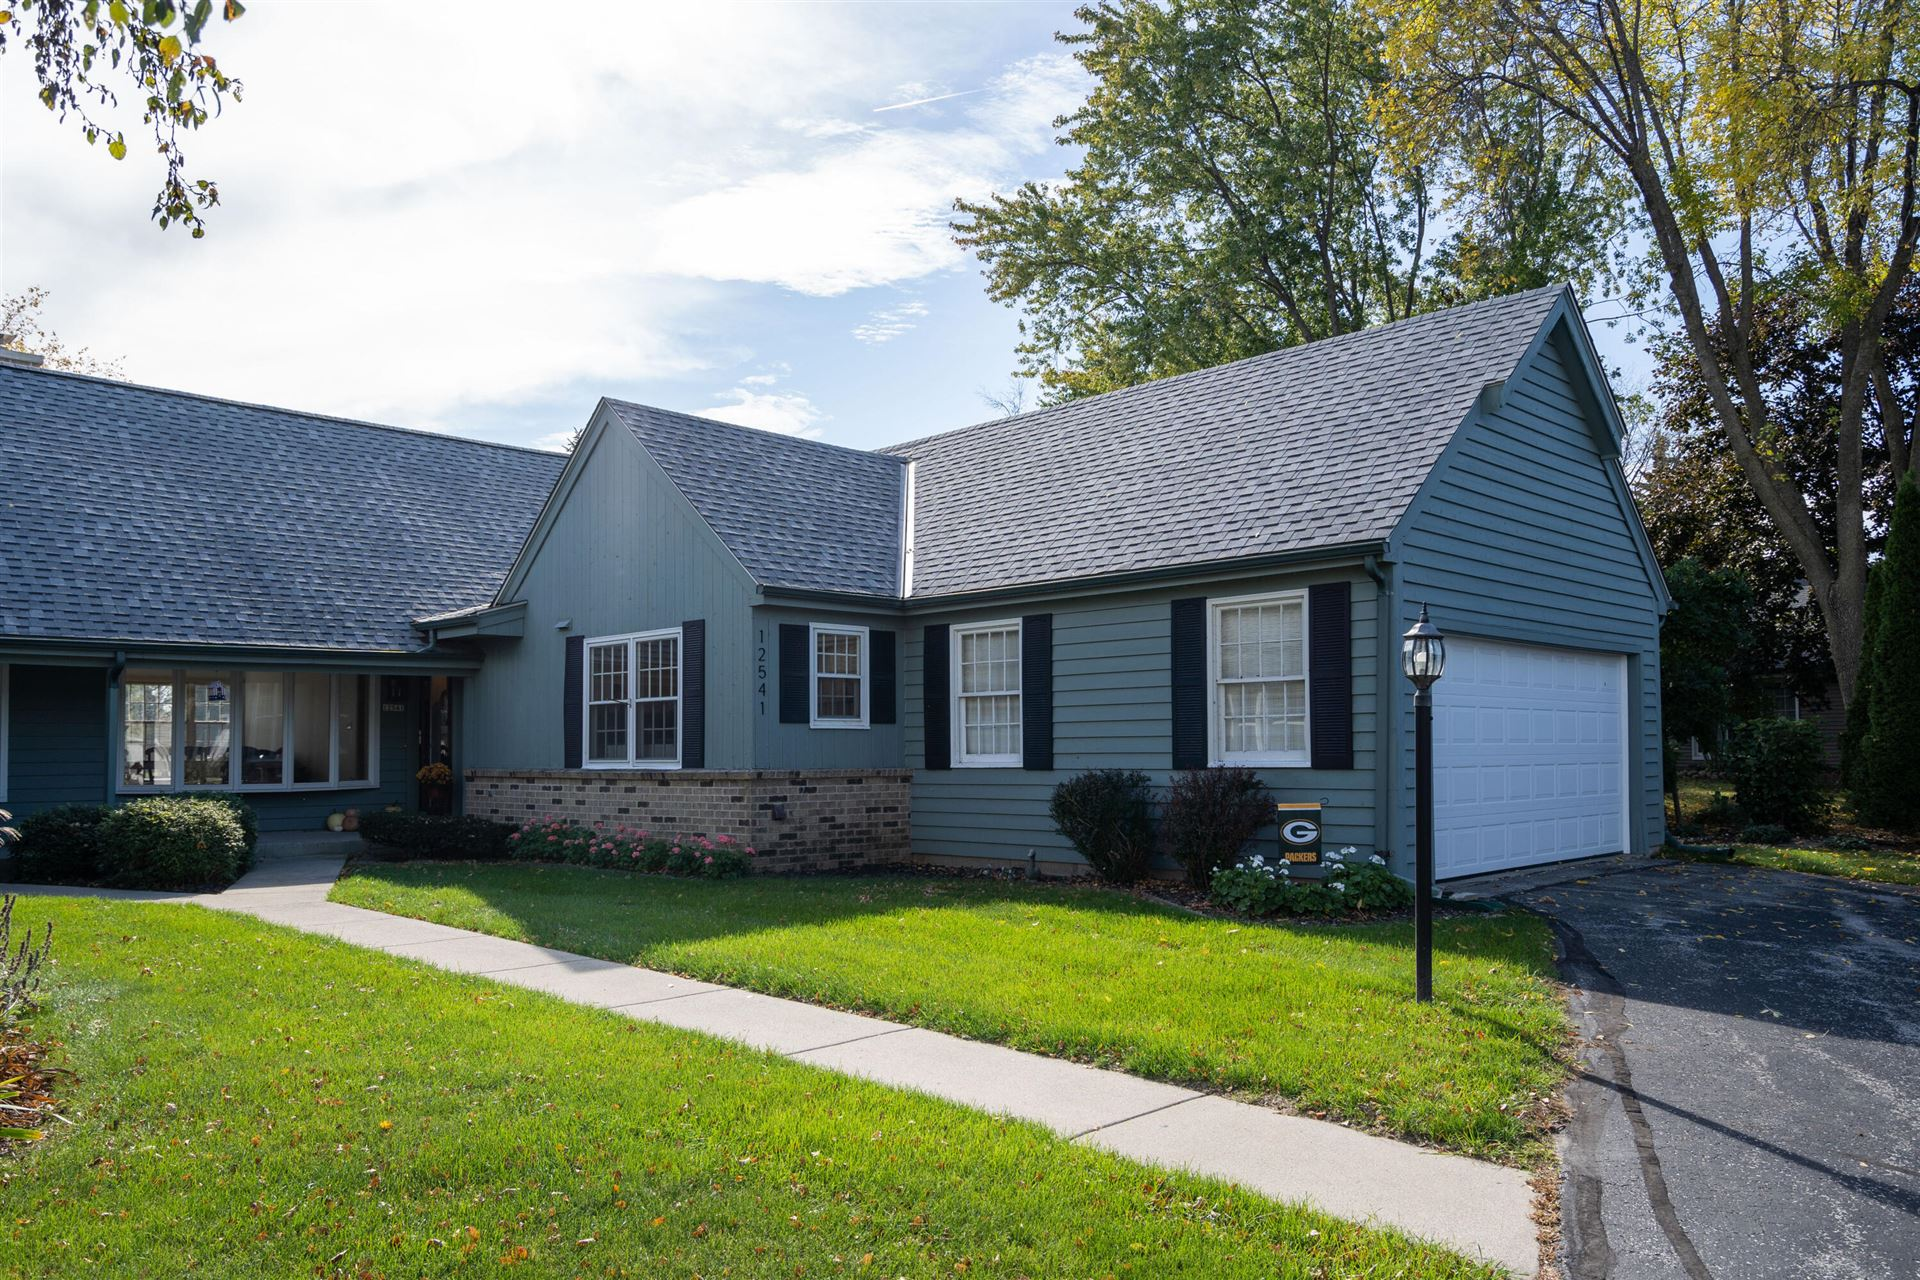 12541 N Woodberry Dr, Mequon, WI 53092 - #: 1768787